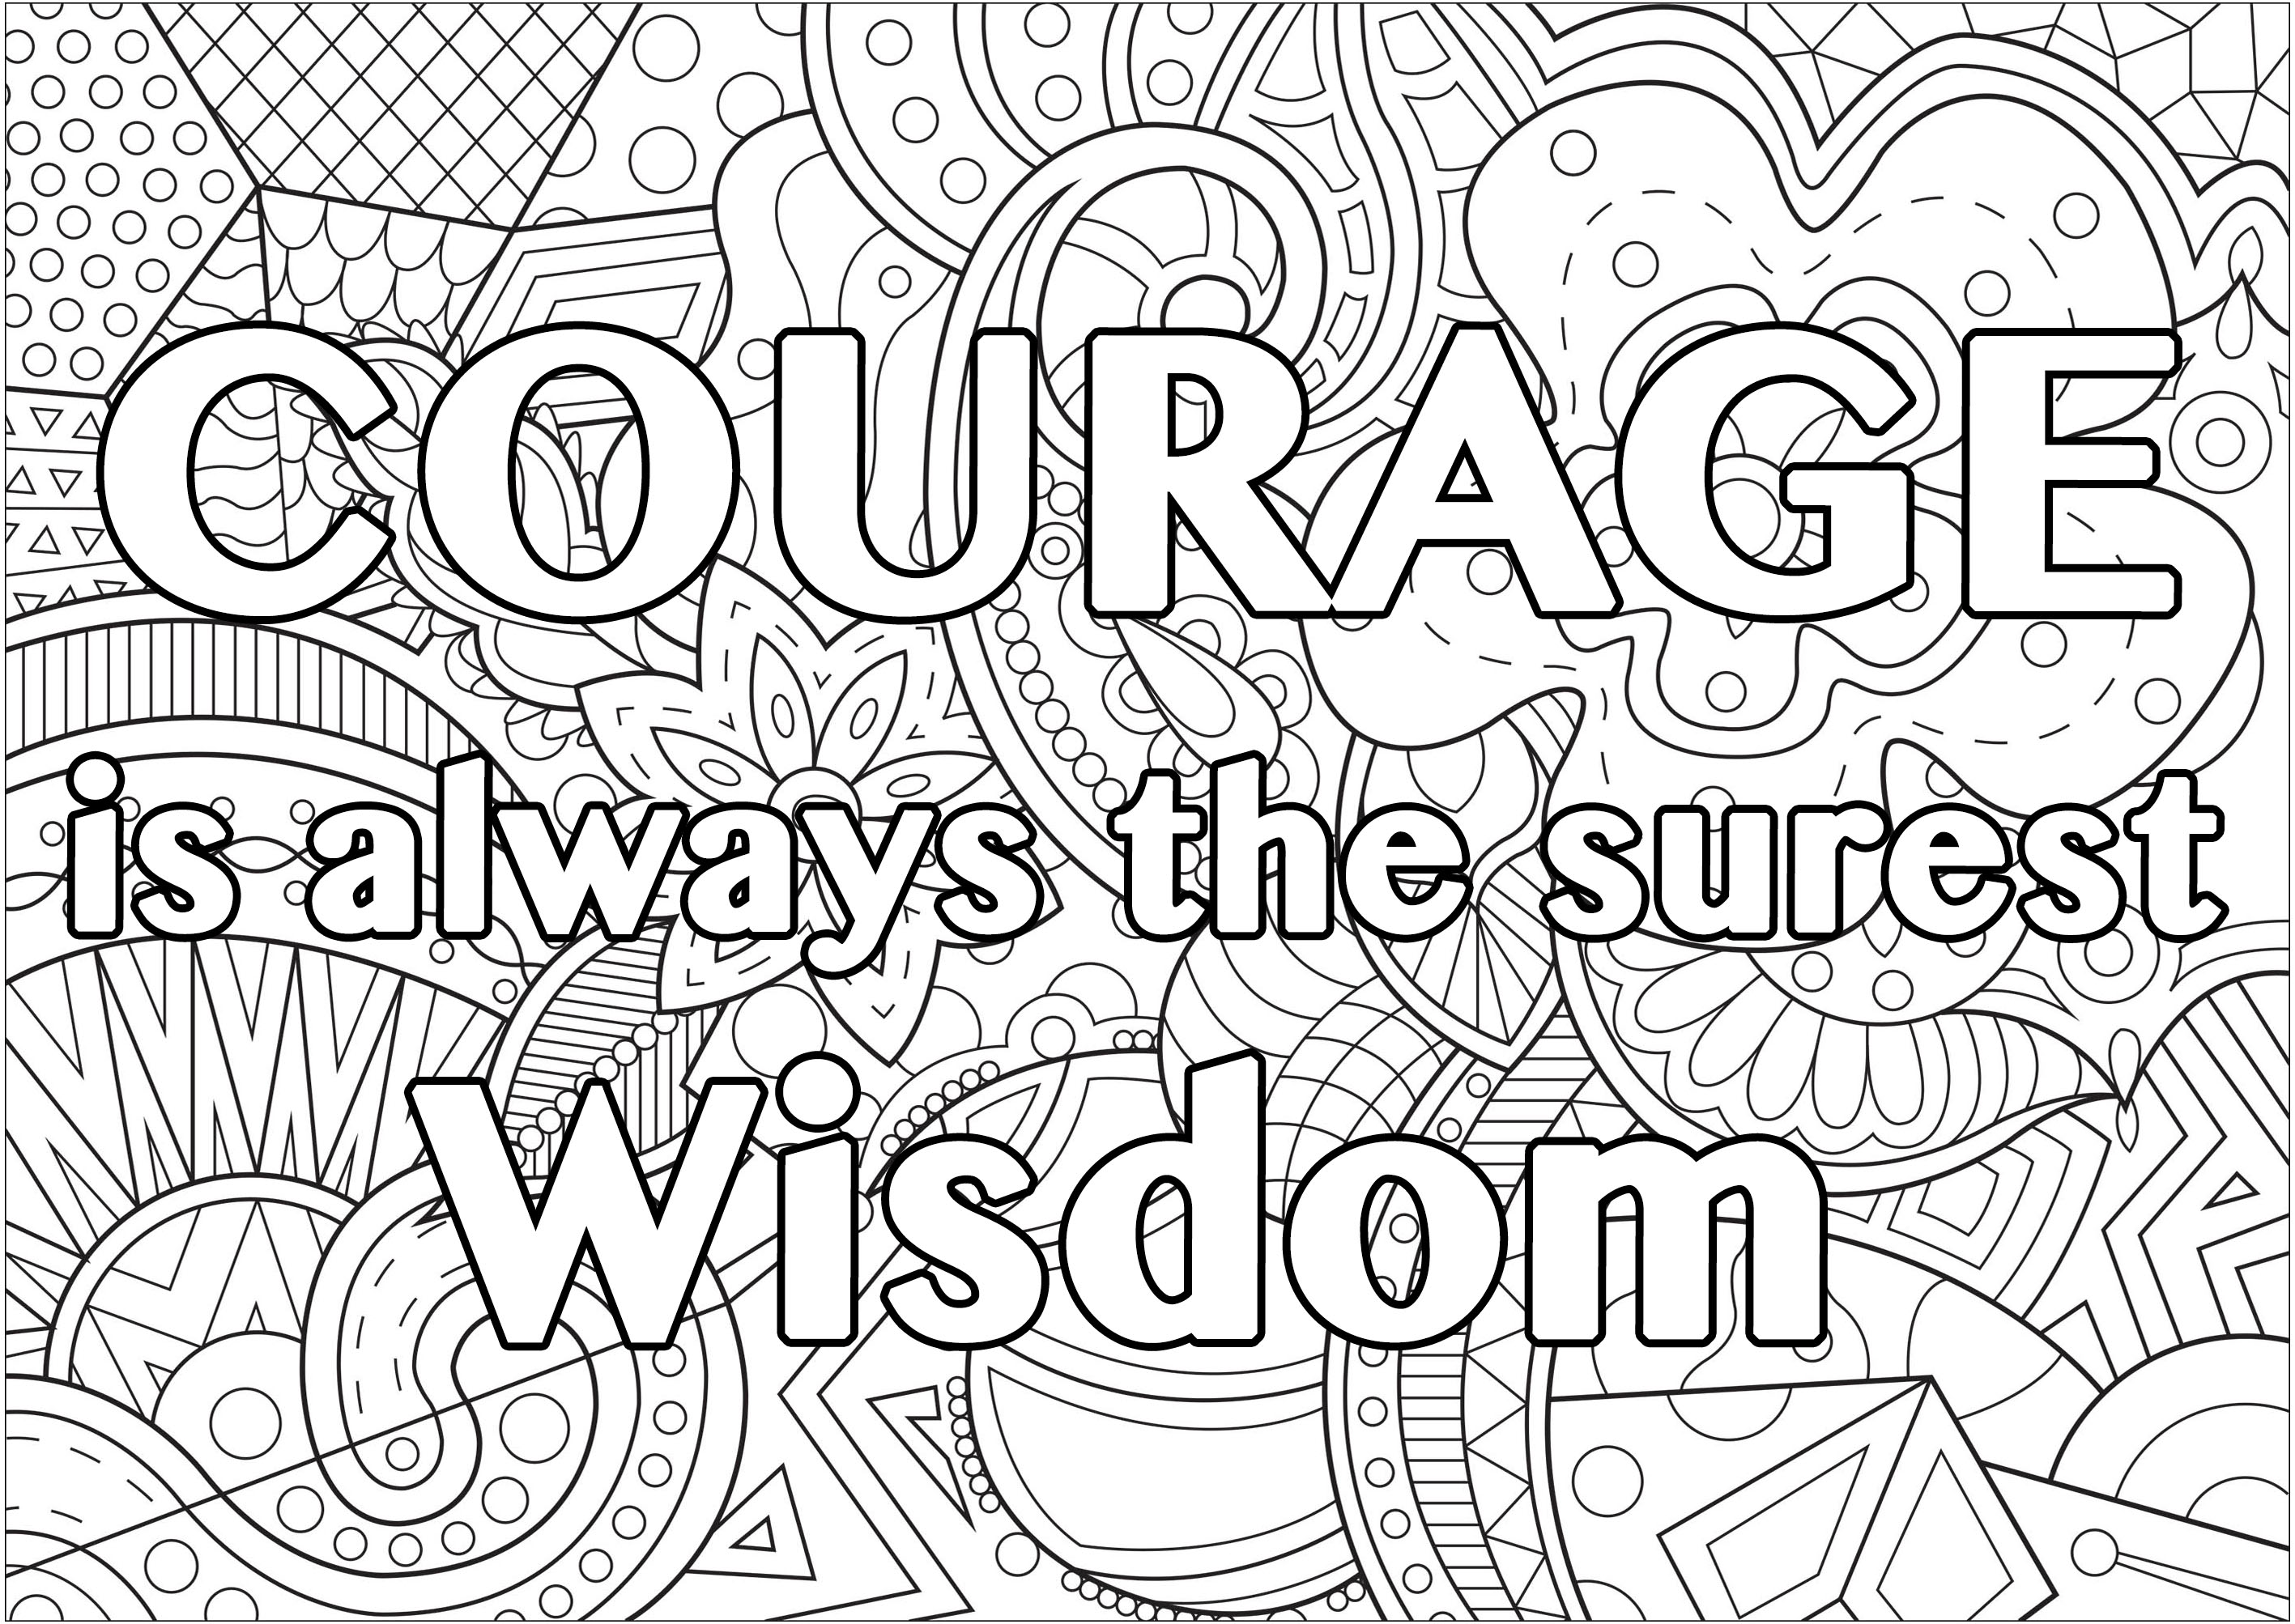 Courage is always the surest wisdom (Quote by Wilfred Grenfell - QuotesBook)